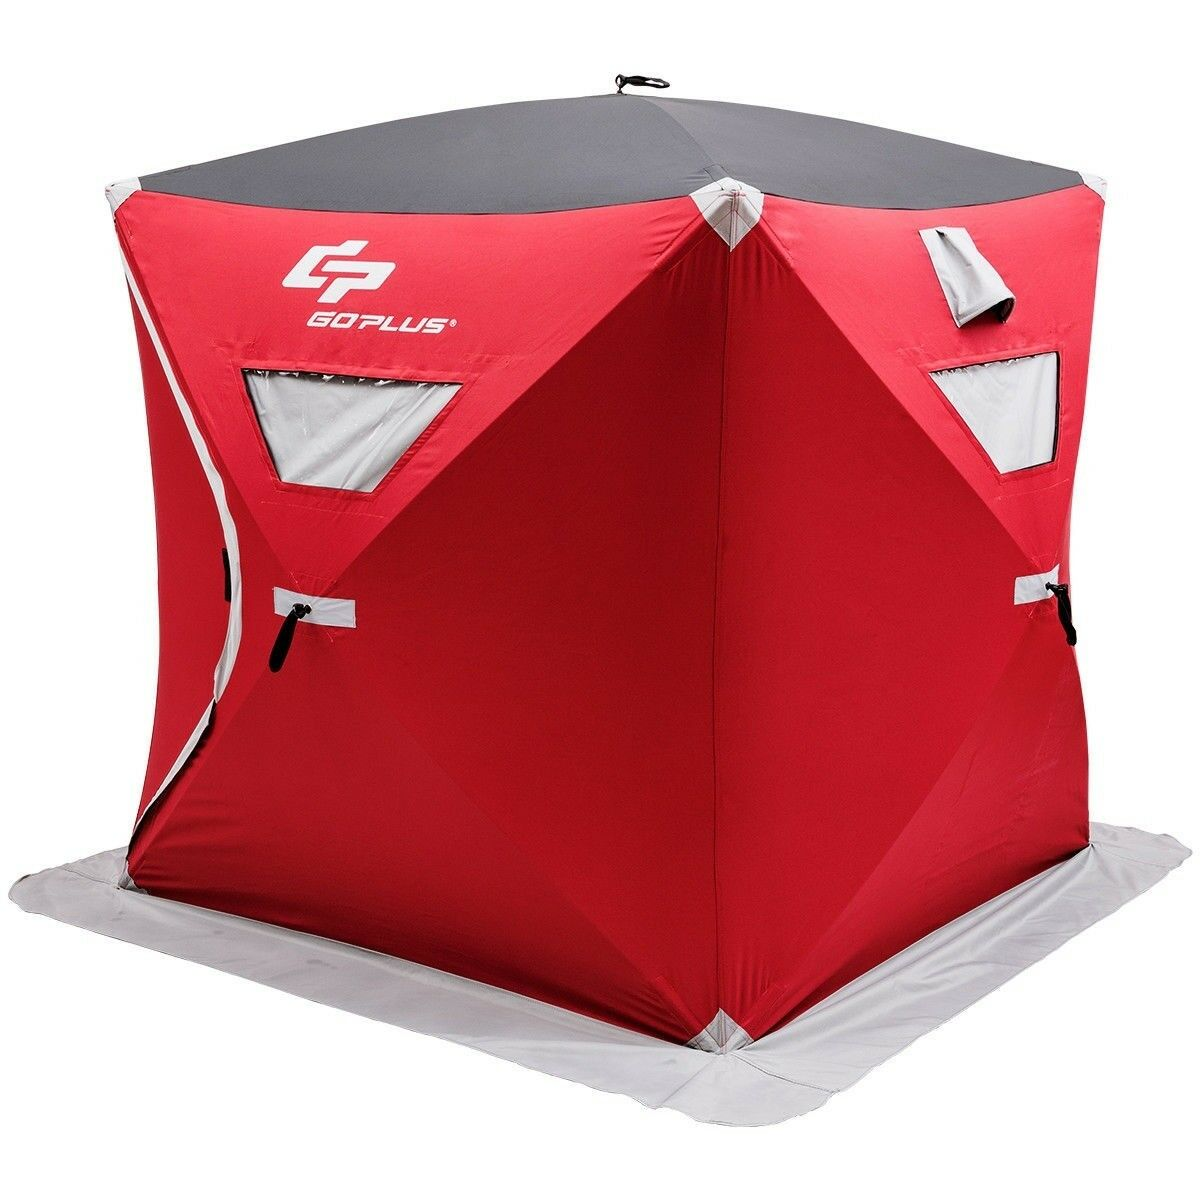 3 Persons Portable Pop-up Ice Shelter Fishing Tent Waterproof with Bag Red color